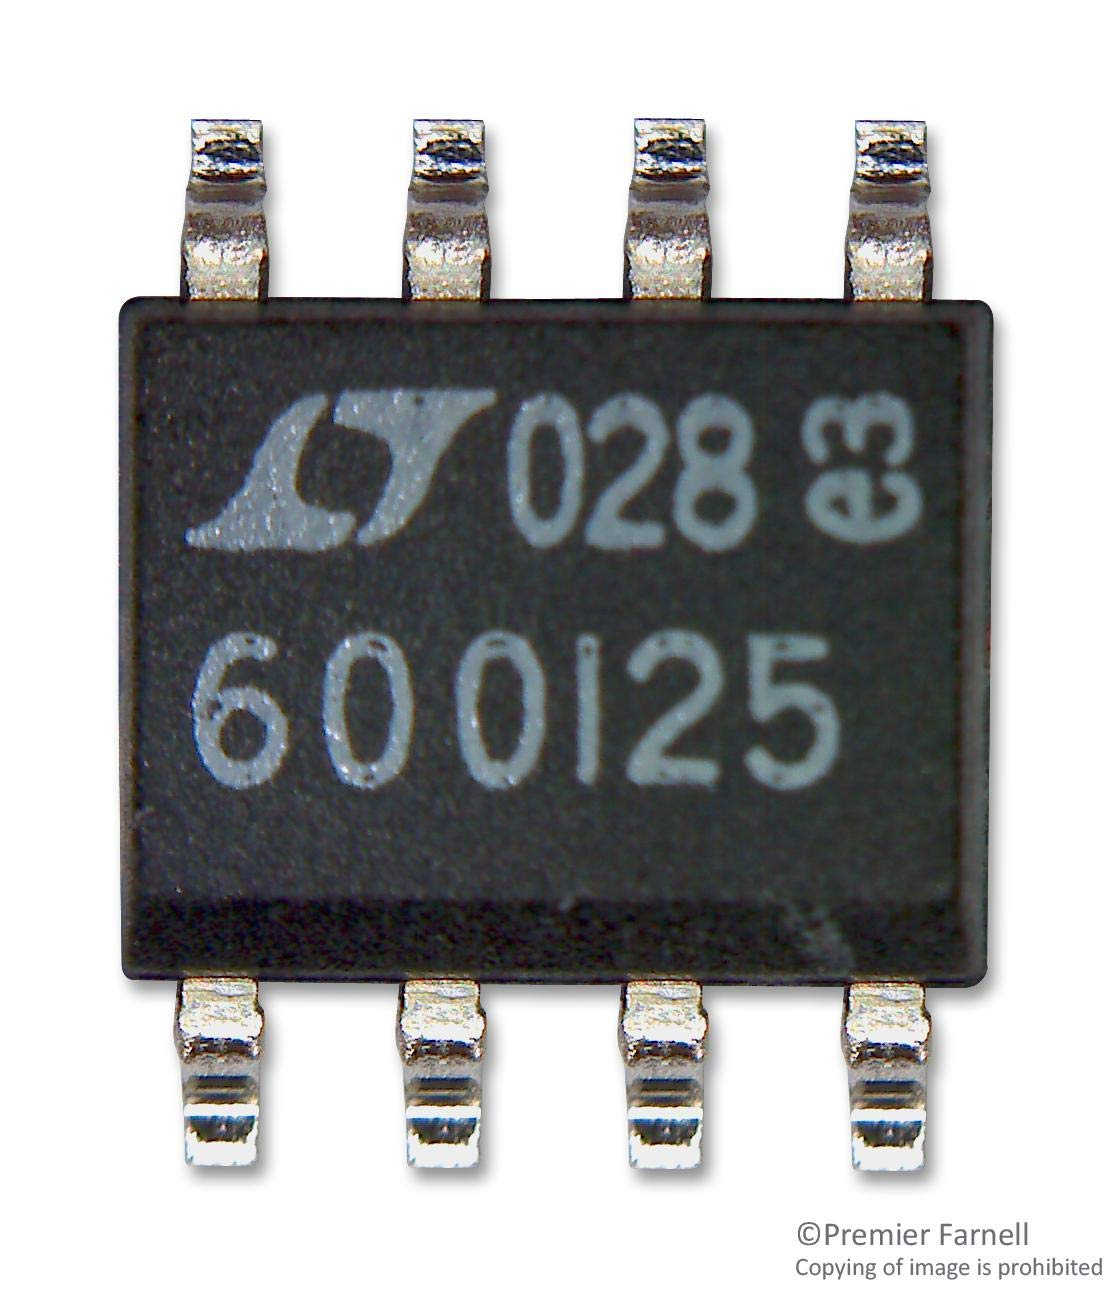 LT6600IS8-2.5#PBF - Differential Amplifier, Low Noise, 1 Amplifiers, 35 mV, 12.3 dB, 2.5 MHz, -40 ?C, 85 ?C (Pack of 5) (LT6600IS8-2.5#PBF)